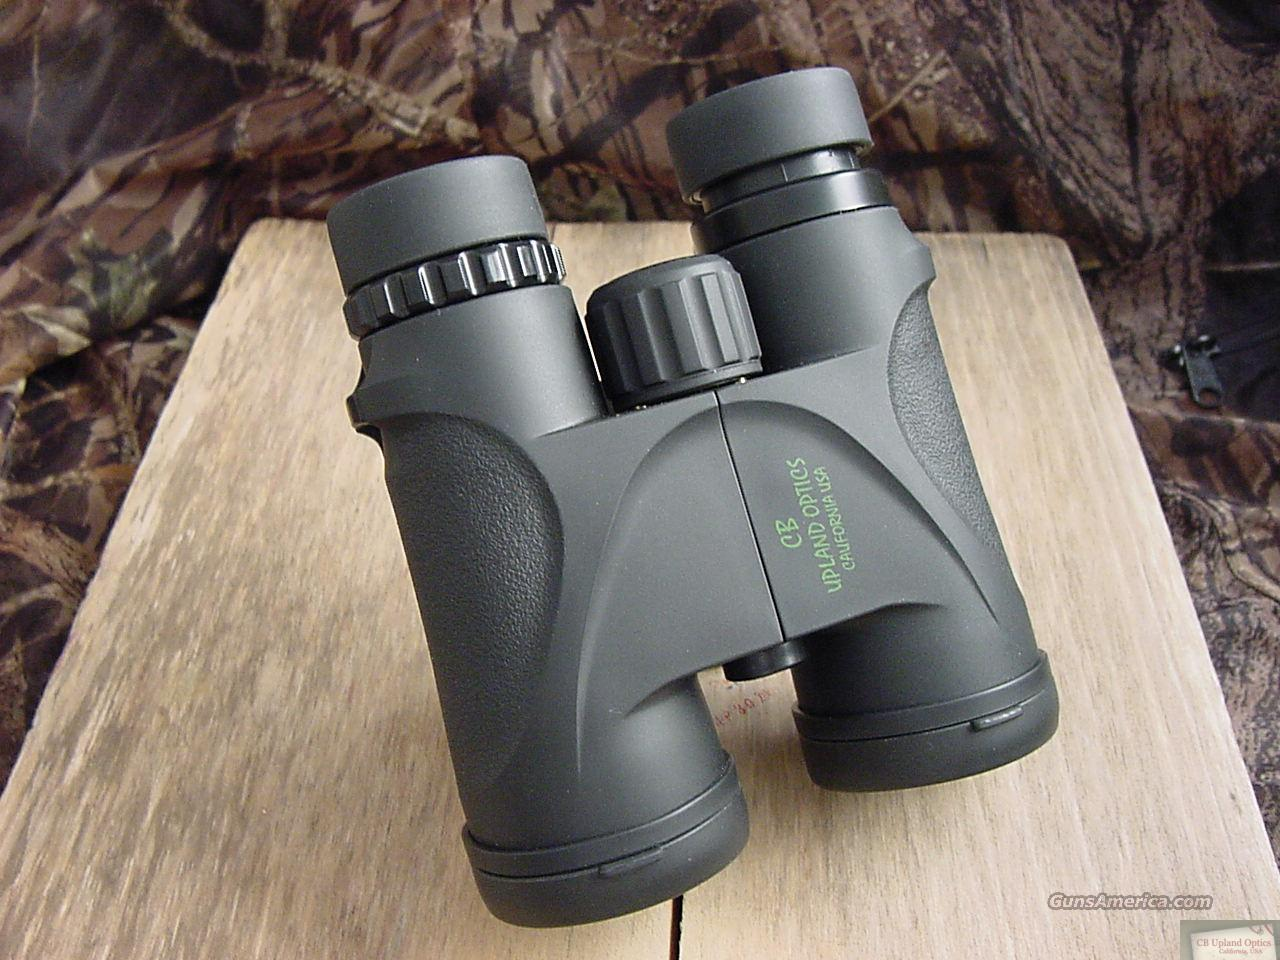 BINOCULARS 10X42 304'@1000YDS BAK-4 FMC BLACK  Non-Guns > Scopes/Mounts/Rings & Optics > Non-Scope Optics > Binoculars